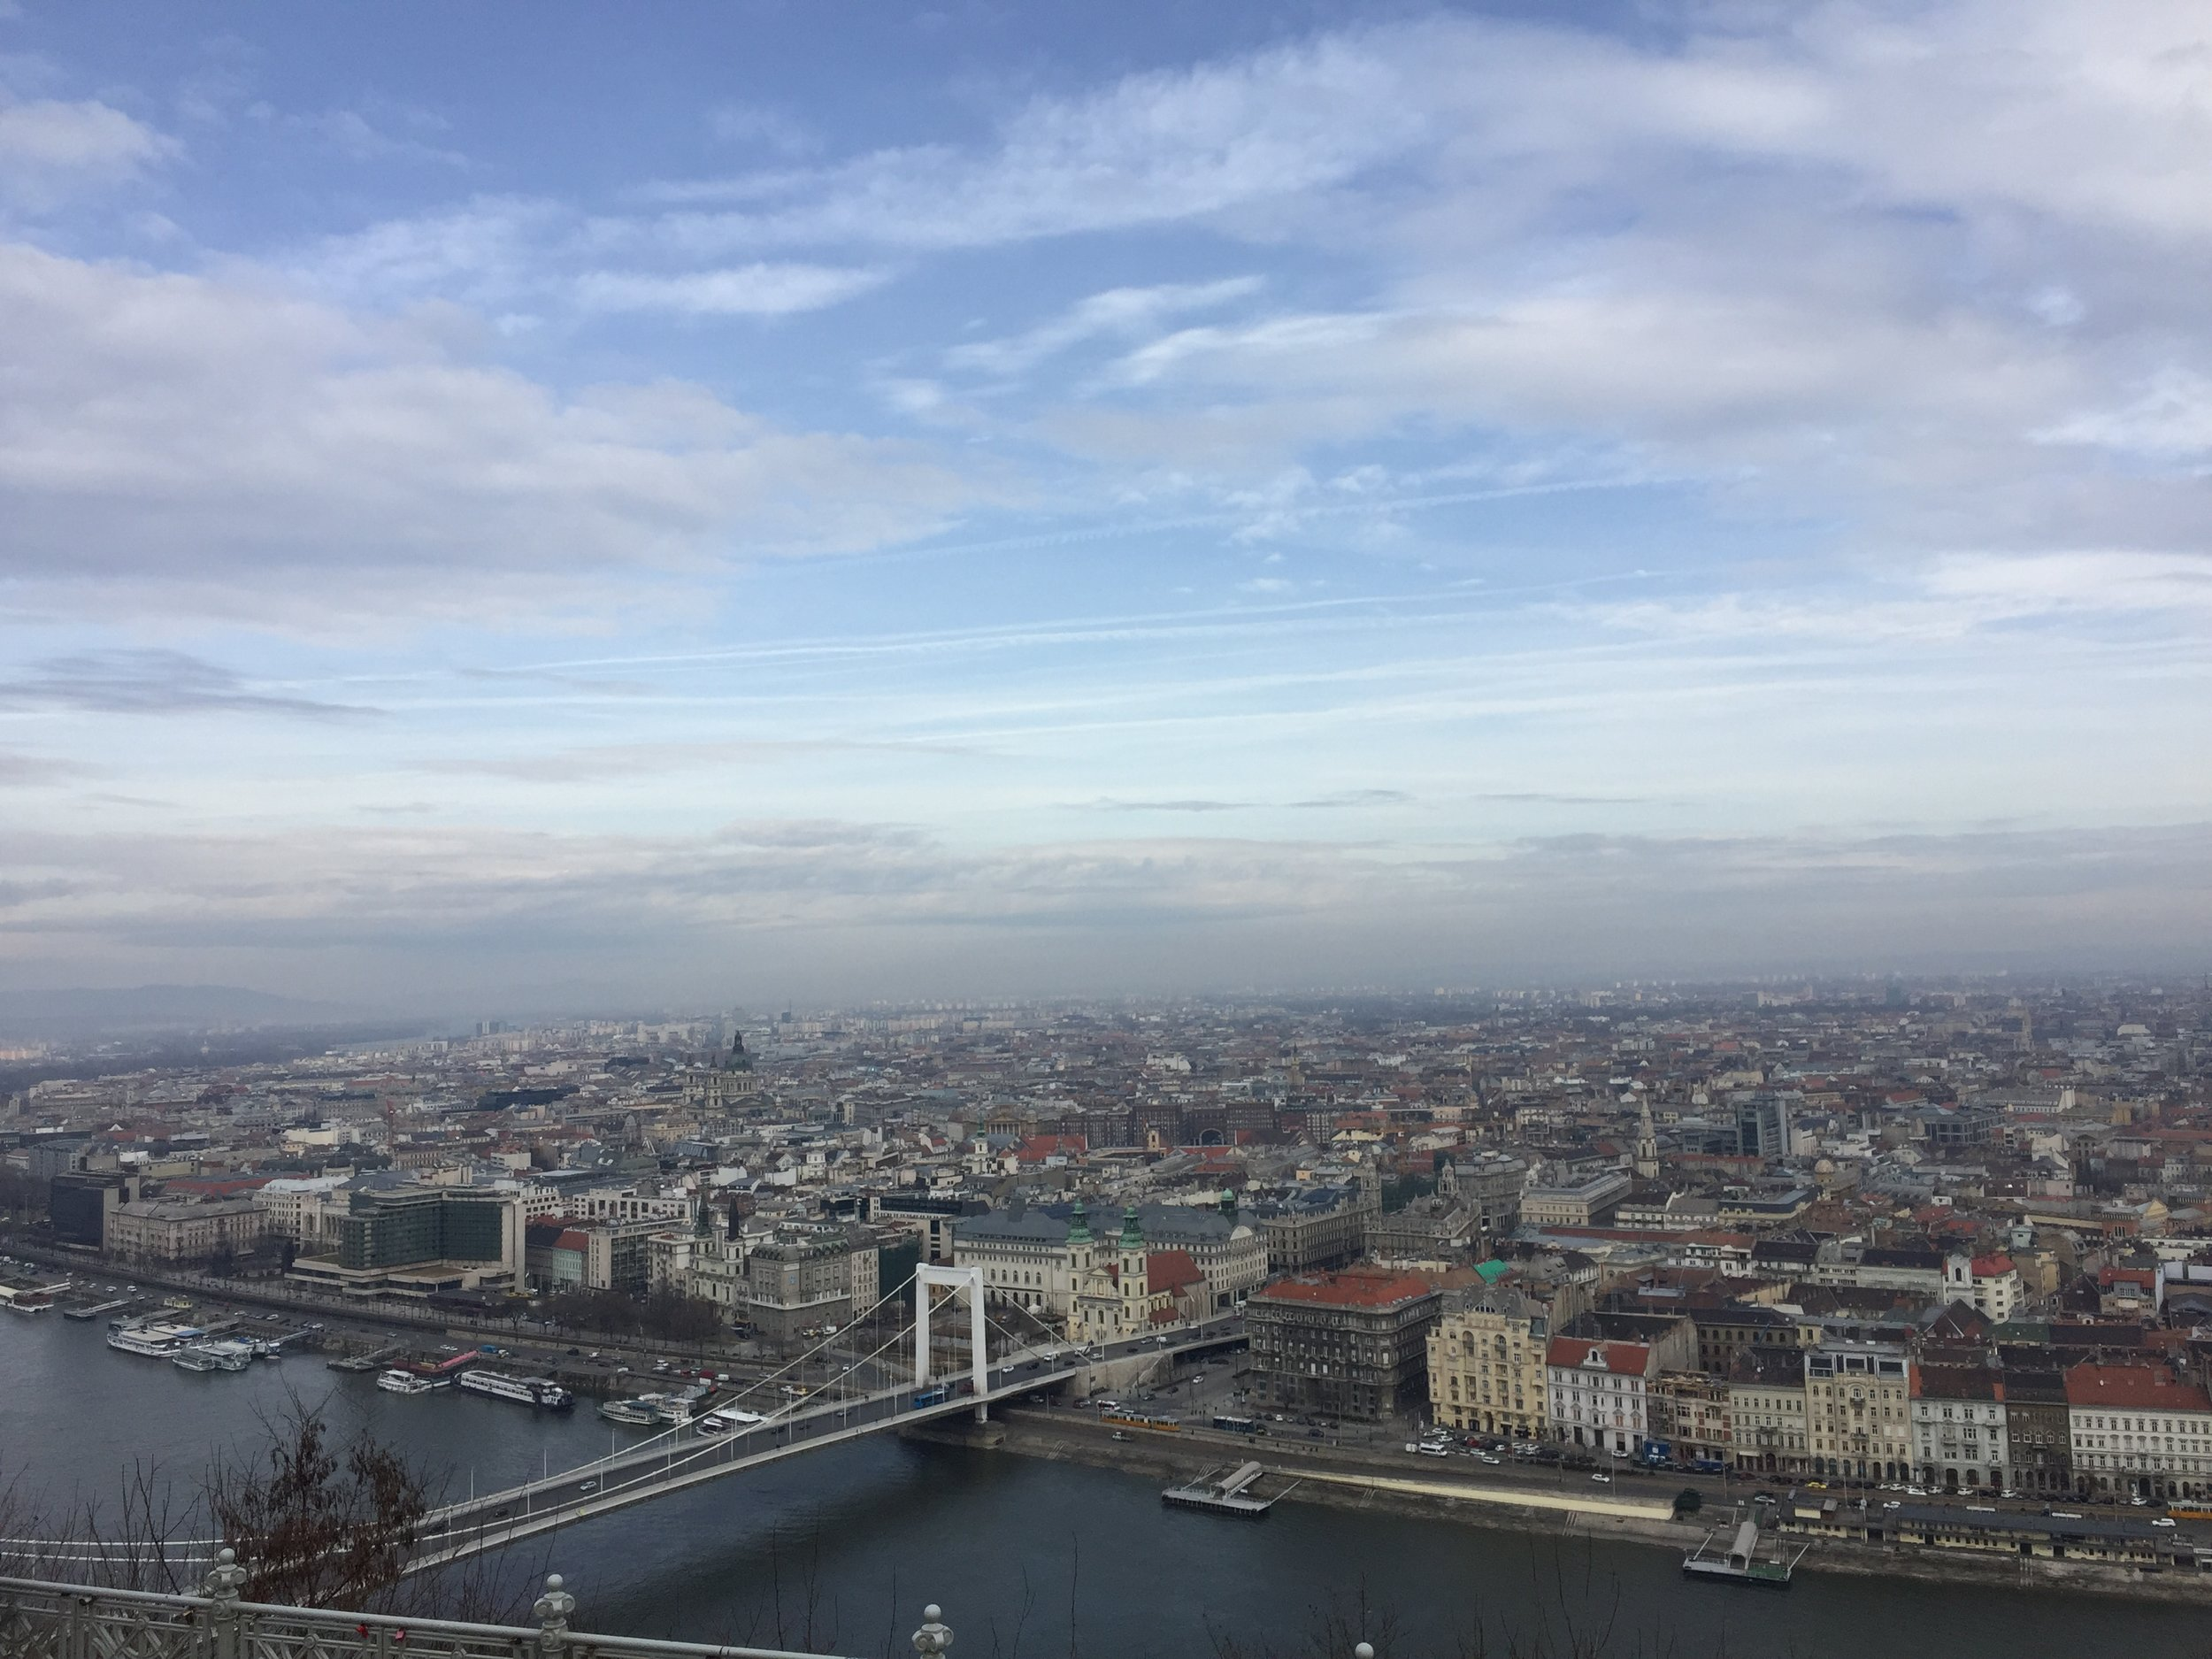 The view from the top of Gellért Hill